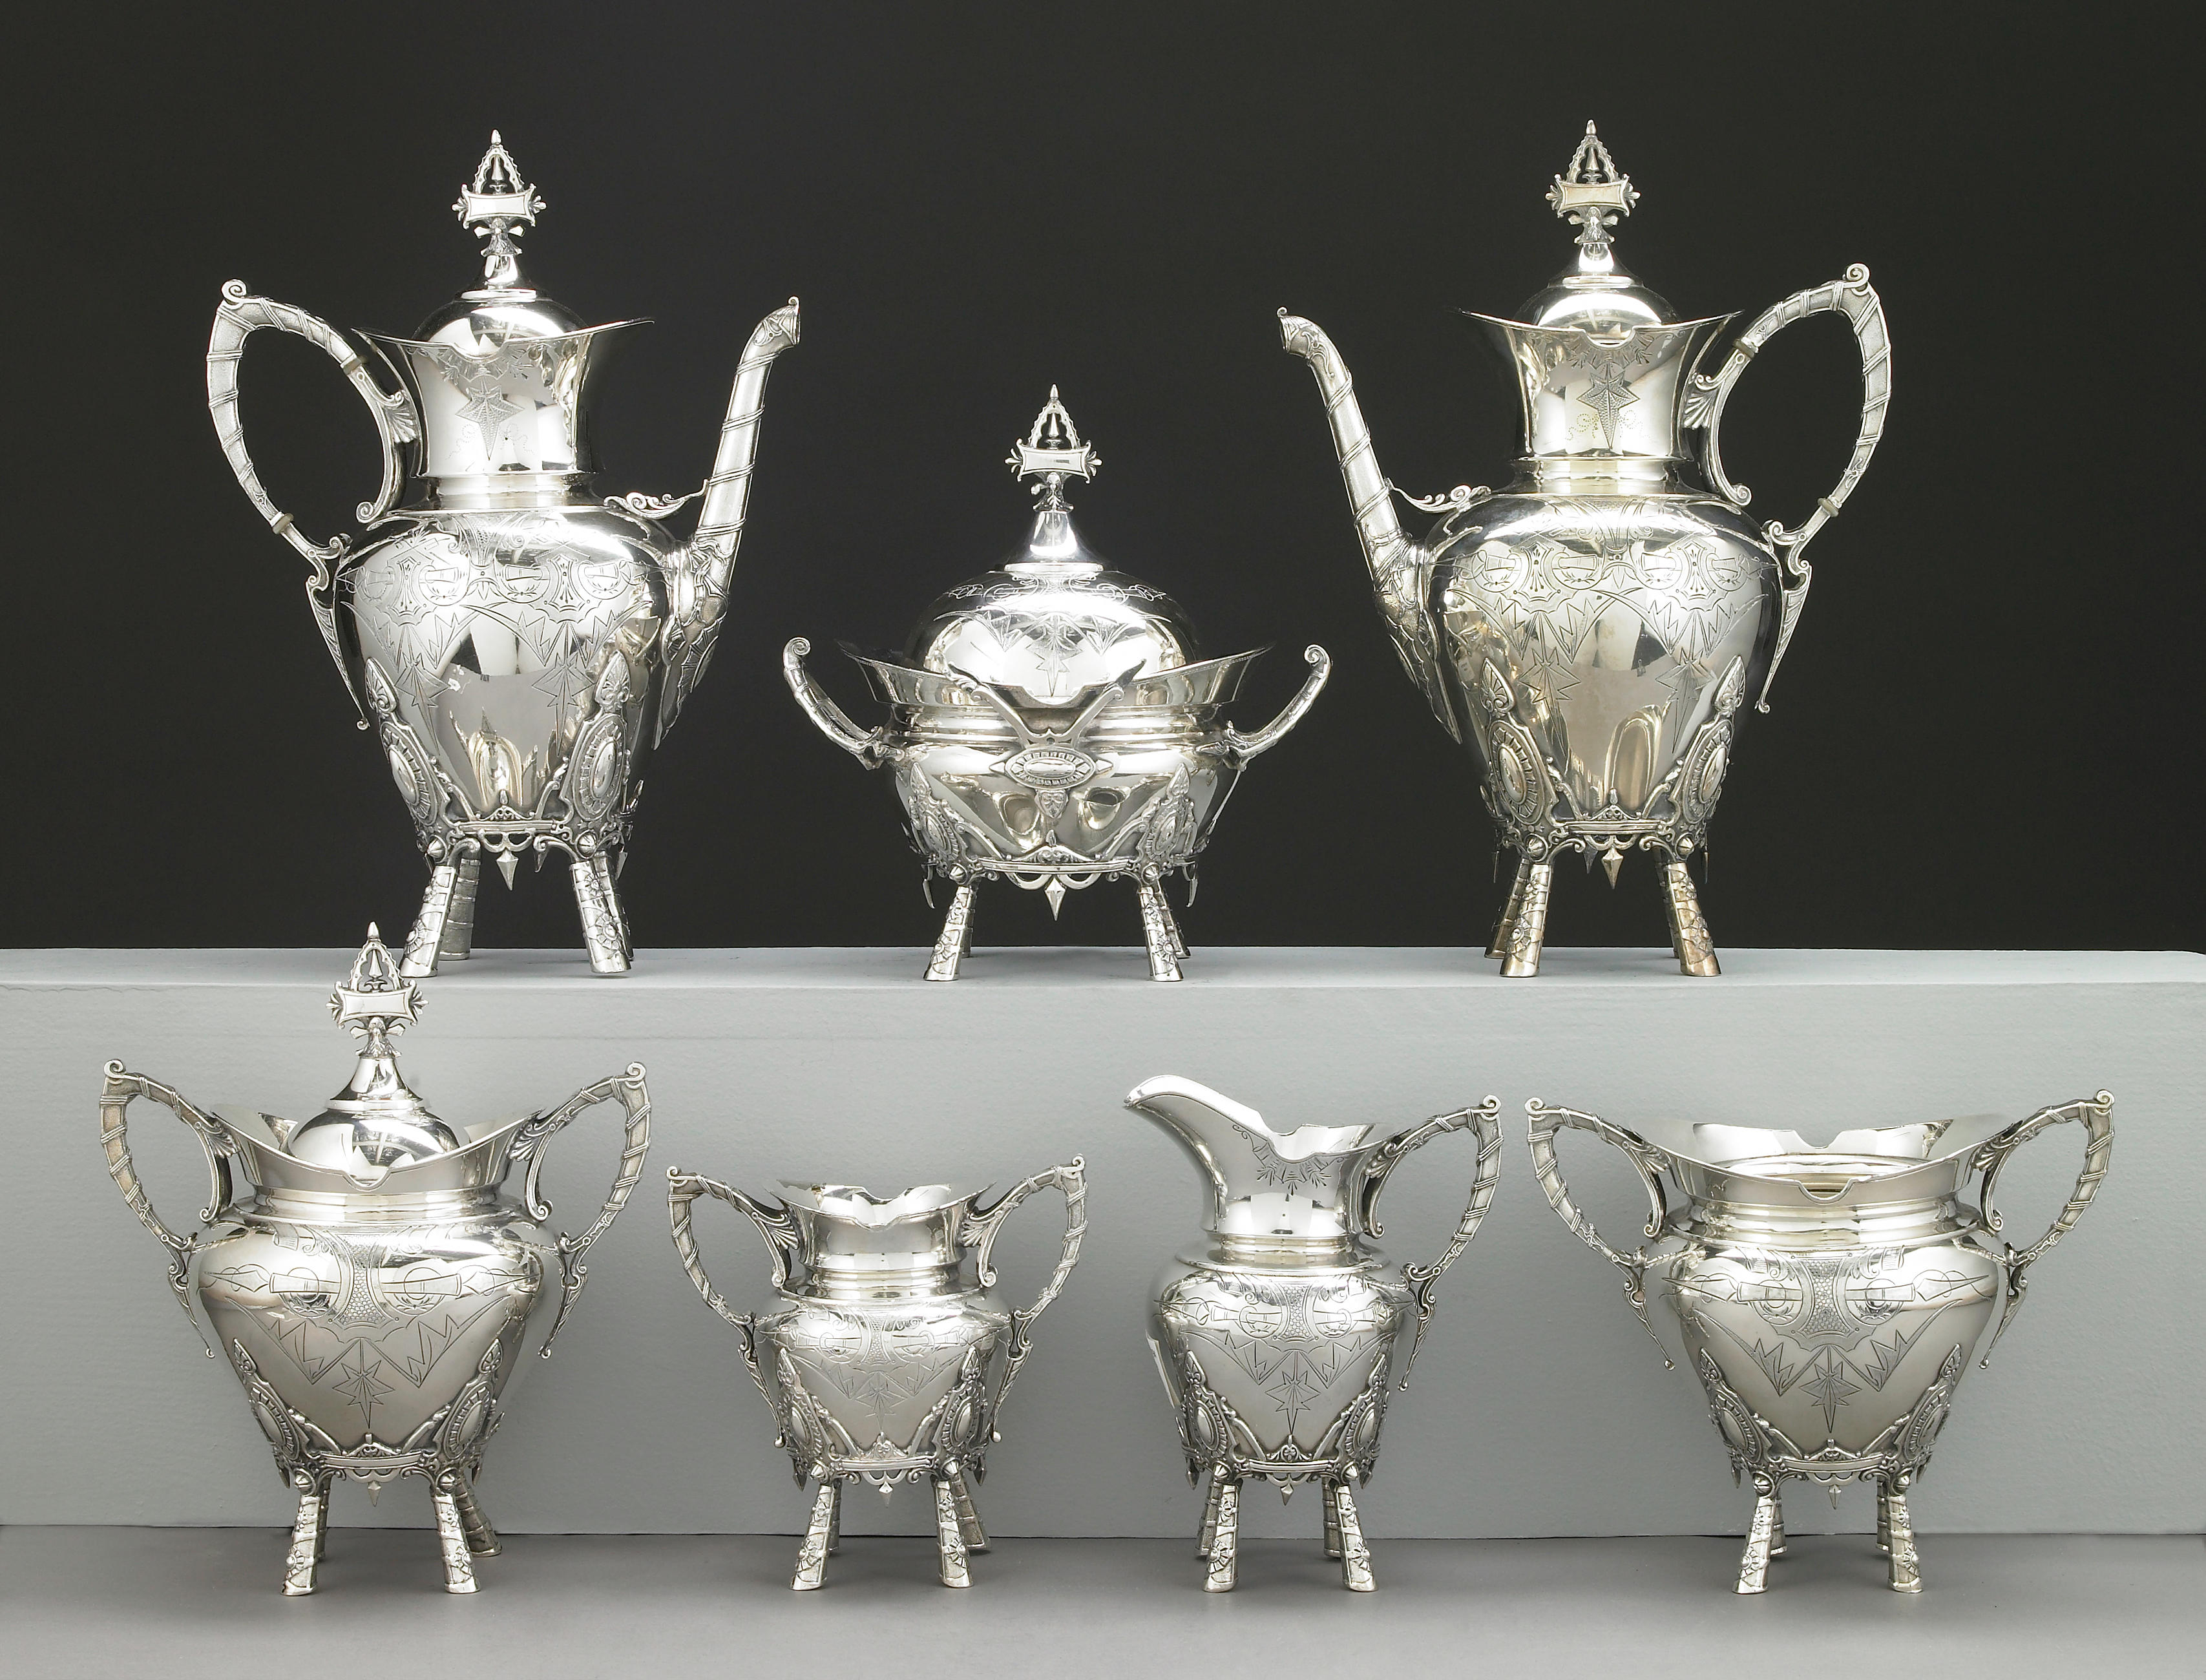 Middletown Plate Company tea and coffee set